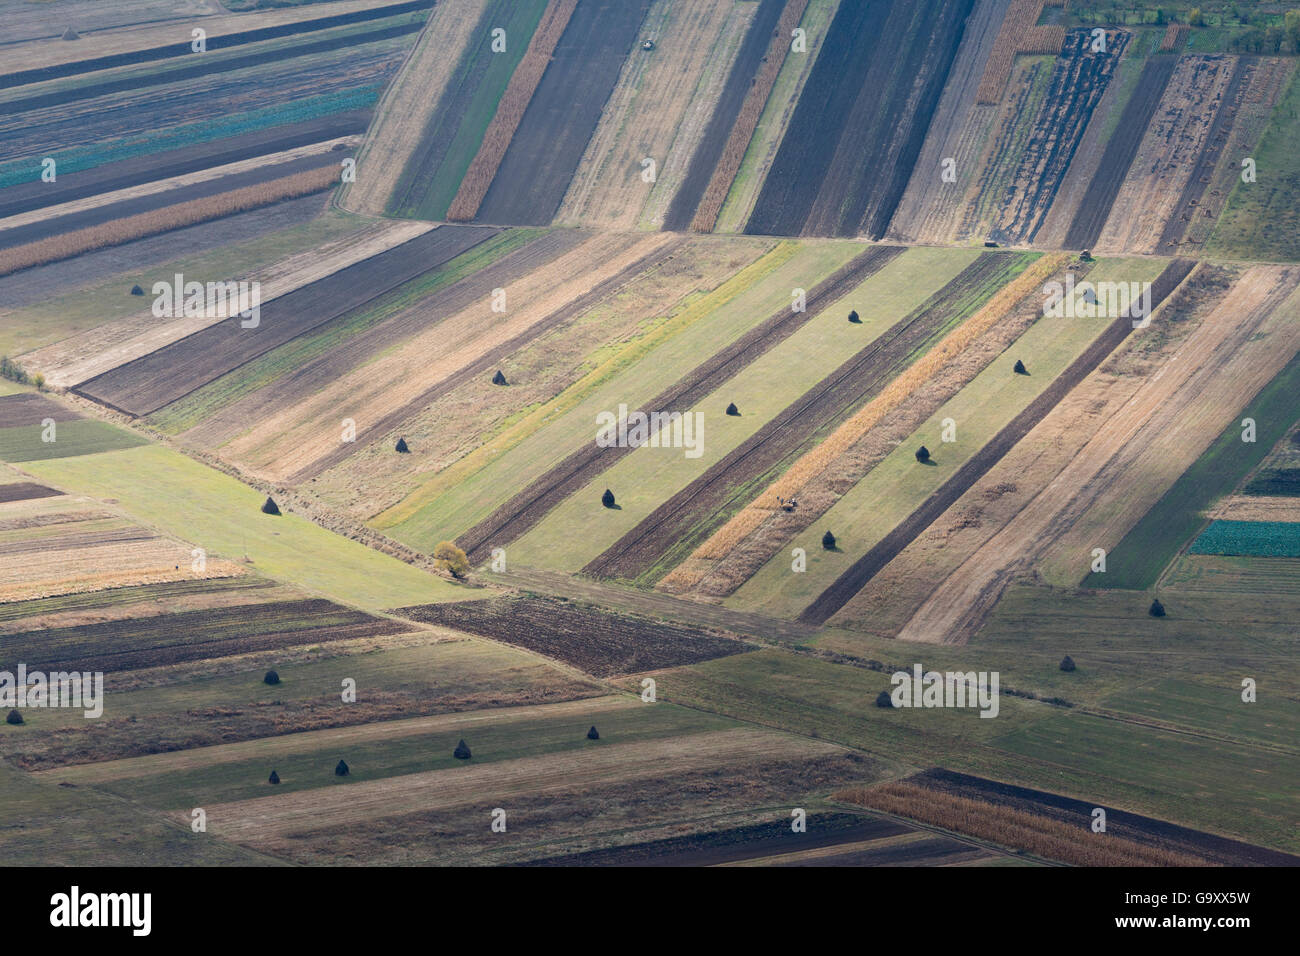 Patterns of agricultural plots viewed from Piatra Secuiului, Alba, Romania, October 2014. - Stock Image